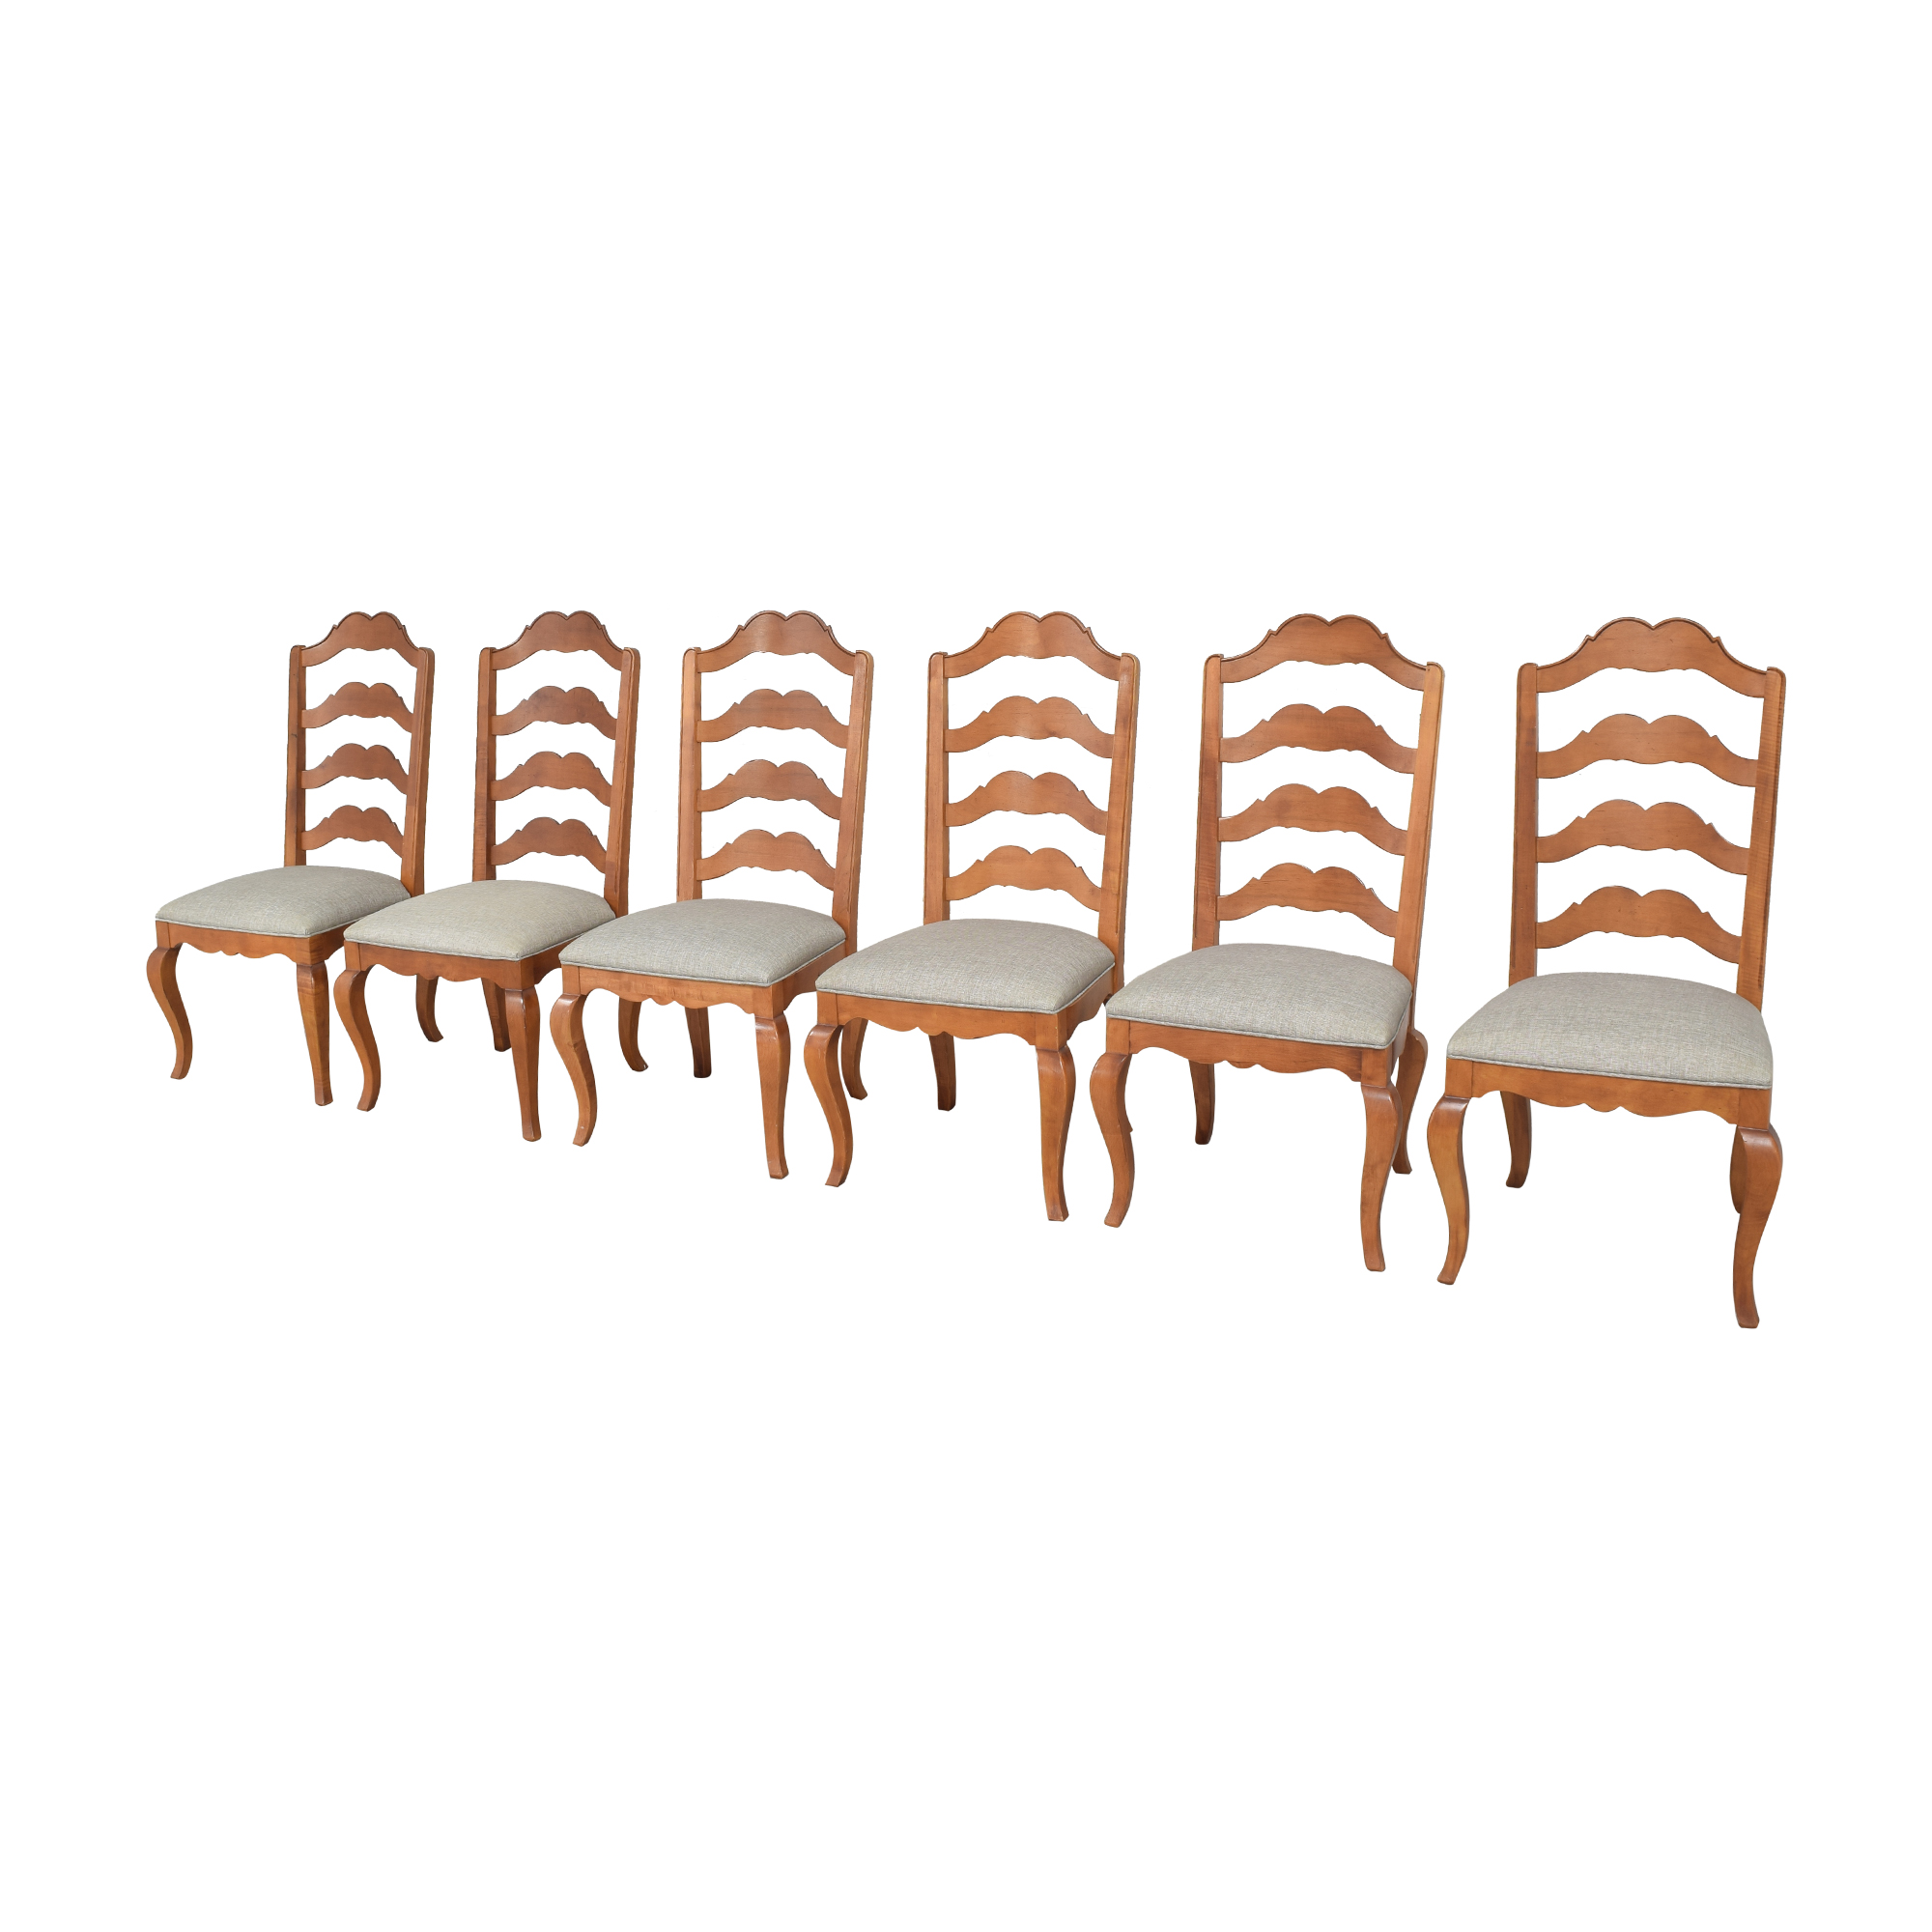 Ethan Allen Ethan Allen Legacy Dining Chairs for sale